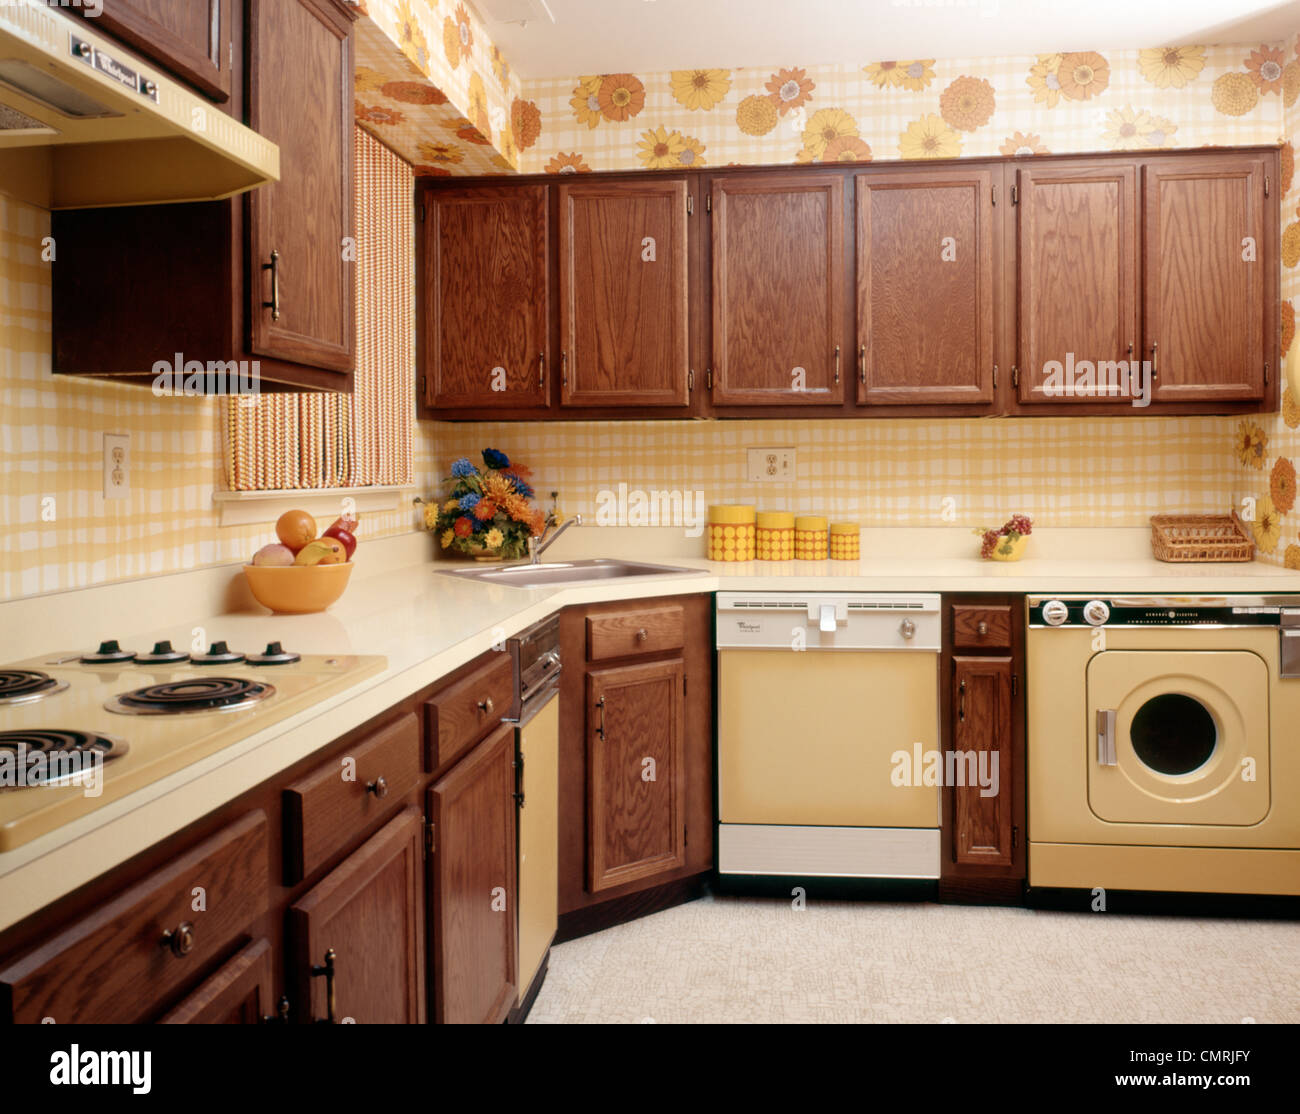 1970s kitchen interior with yellow appliances wood cabinets and sunflower floral print wallpaper 1970s kitchen interior with yellow appliances wood cabinets and      rh   alamy com